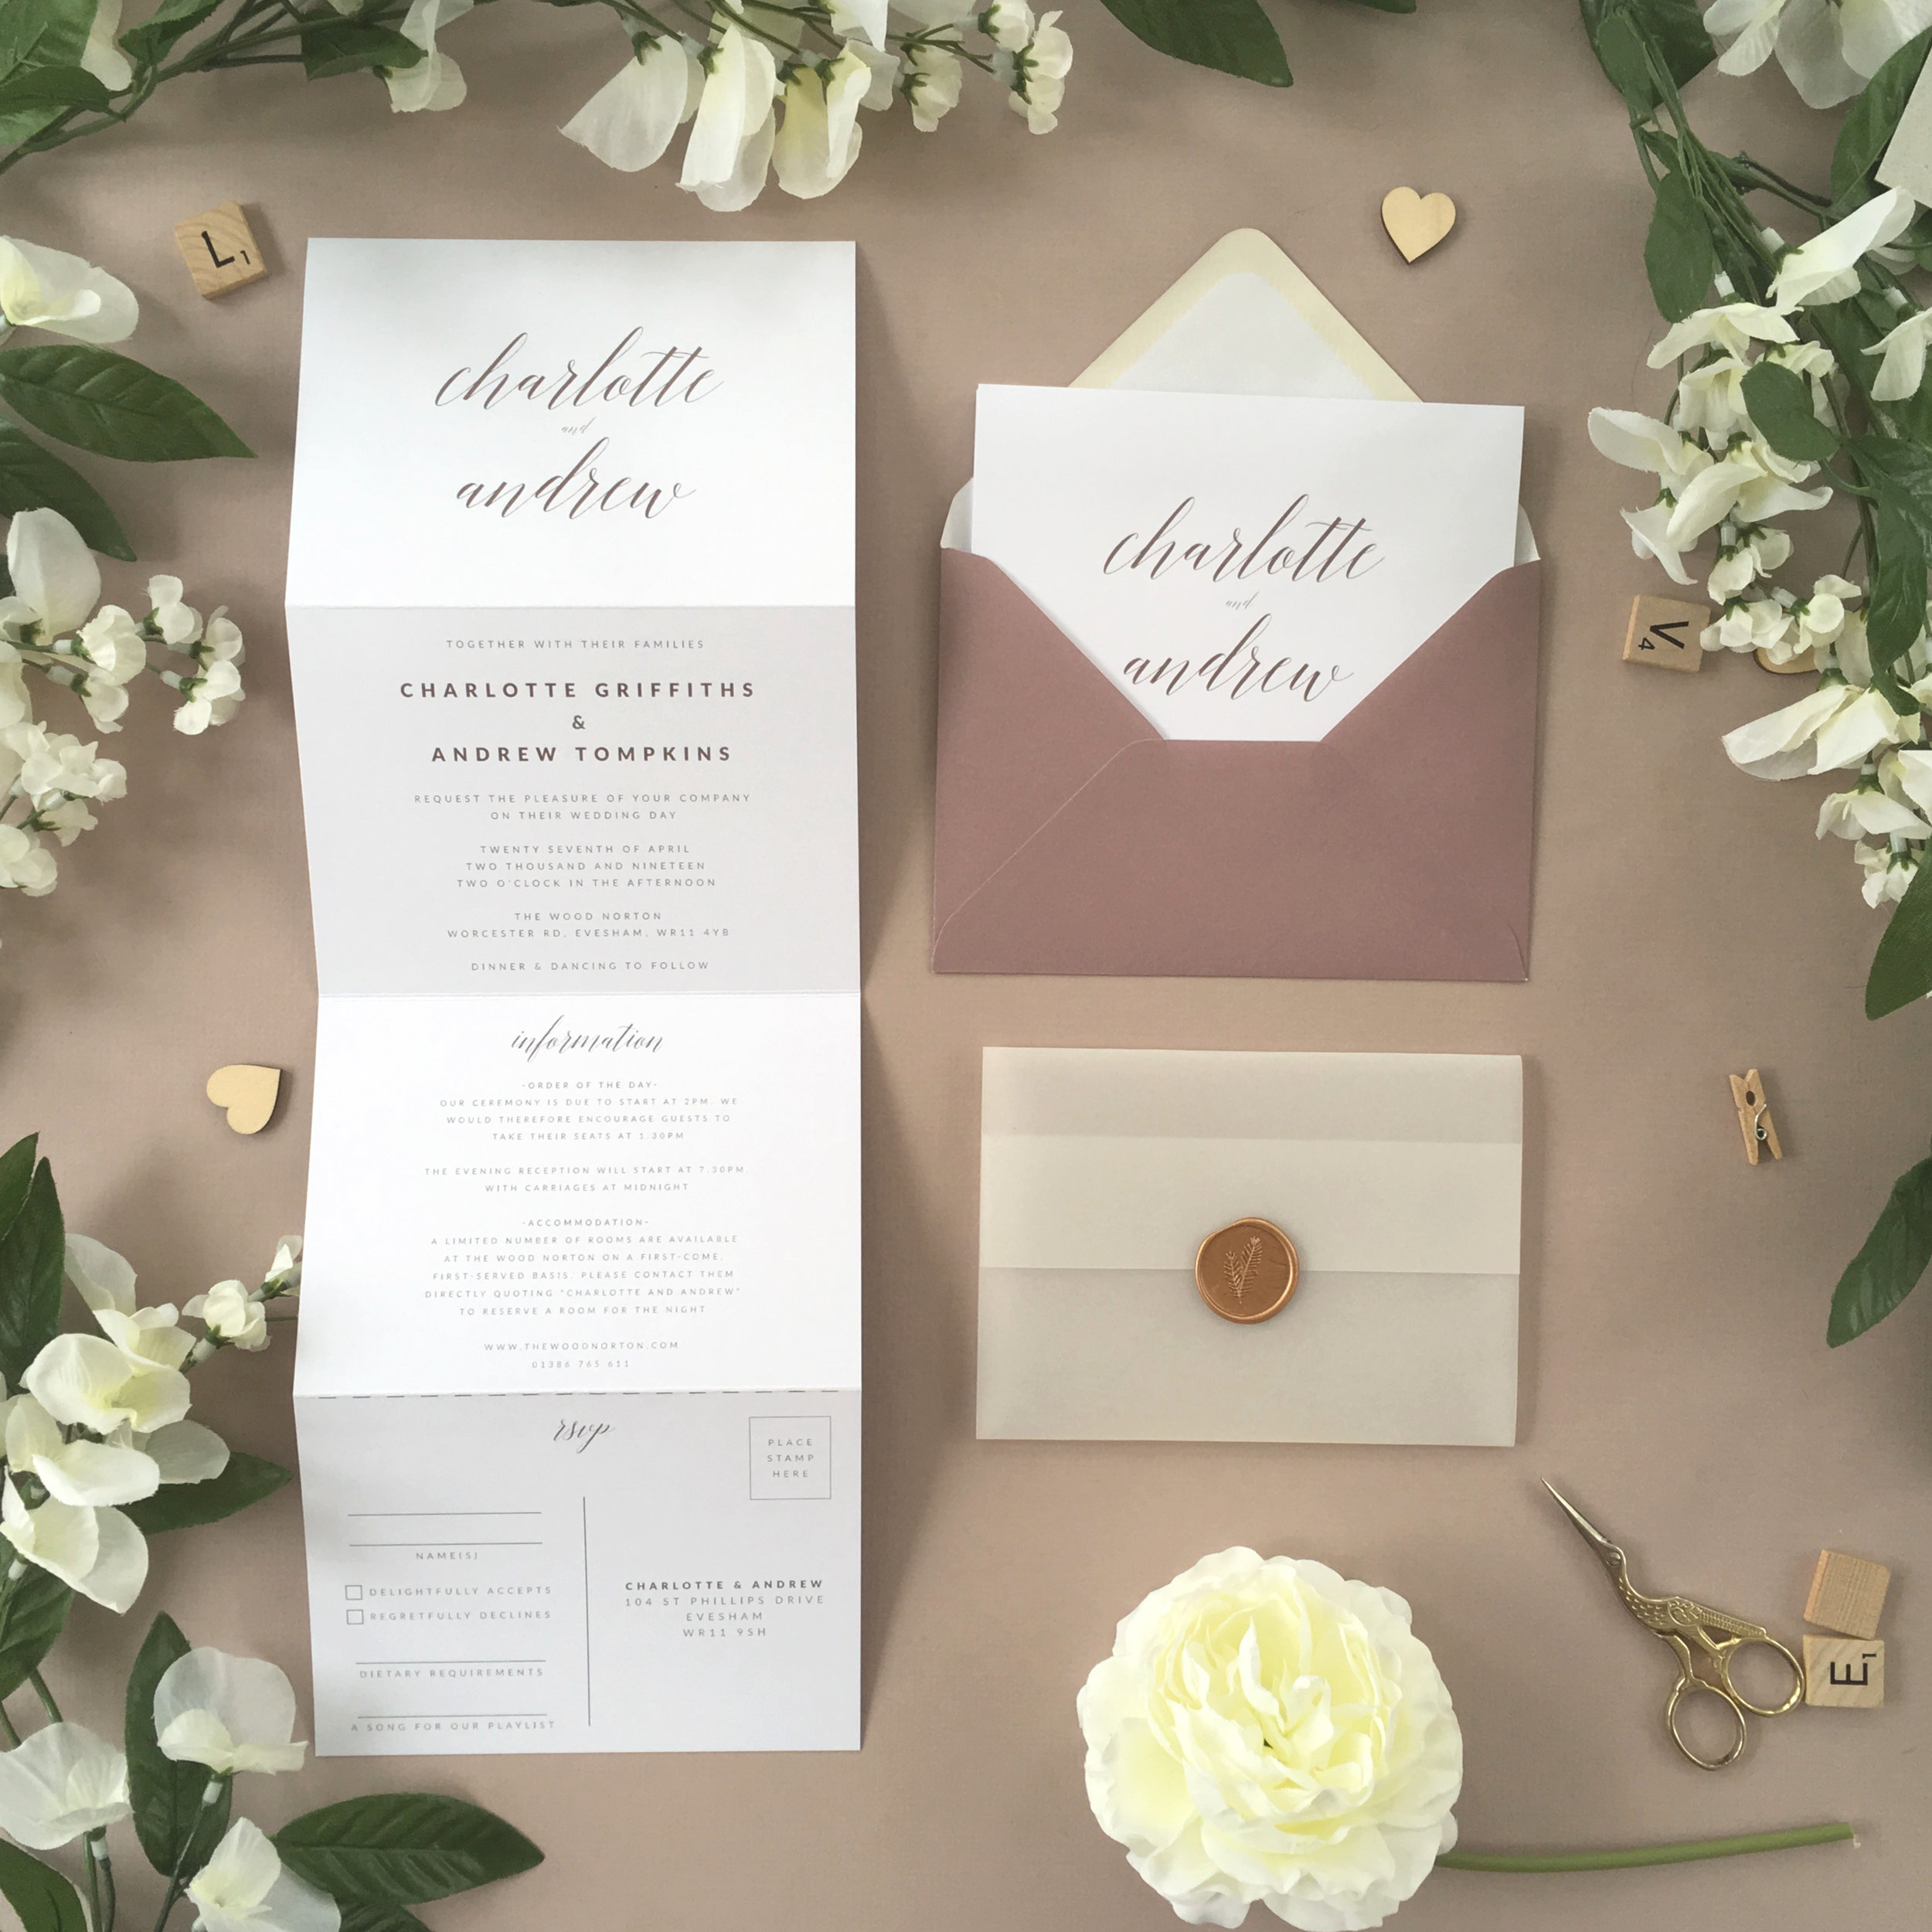 King's Road - Pictured in a dusky scheme but with limitless colouring combinations to choose from, this beautifully elegant concertina invitation comes from our King's Road collection.Our concertina invitations are a great all-in-one solution, with a detachable RSVP at the bottom of the invitation - all guests need to do is fill in their details, put a stamp in the corner and post!Concertina invitations can be provided on an as-is basis, or can be provided bound with a vellum jacket and timeless wax seal, or tied with ribbon or twine for a lovely hand-finished approach.- Concertina Invitation - from £1.95- Ribbon or Twine - £0.40- Vellum Jacket - £0.40- Wax Seal - £0.85 (Custom engraving also available)White envelope provided as standard with coloured upgrade available.